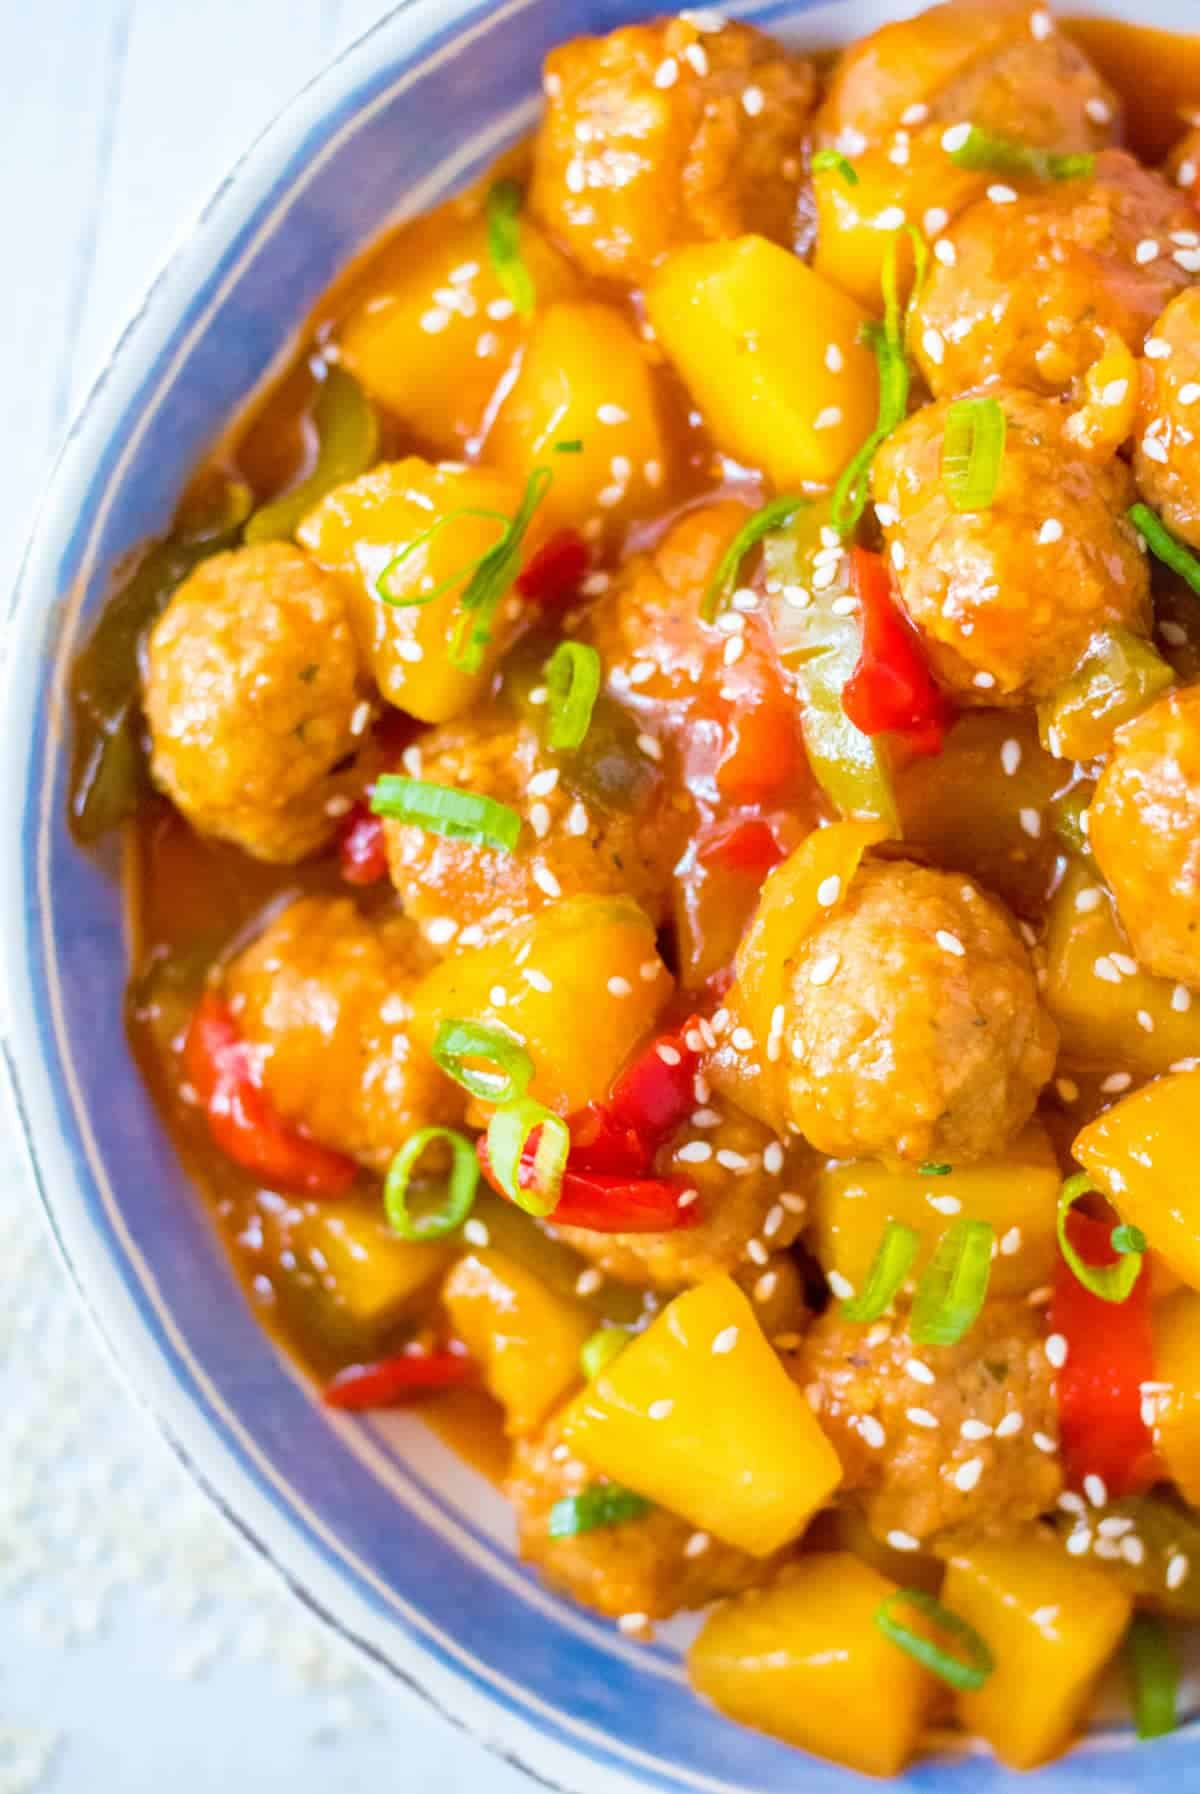 Sweet and sour meatballs in a bowl with pinapple and red peppers. Sesame seeds sprinkled on top.